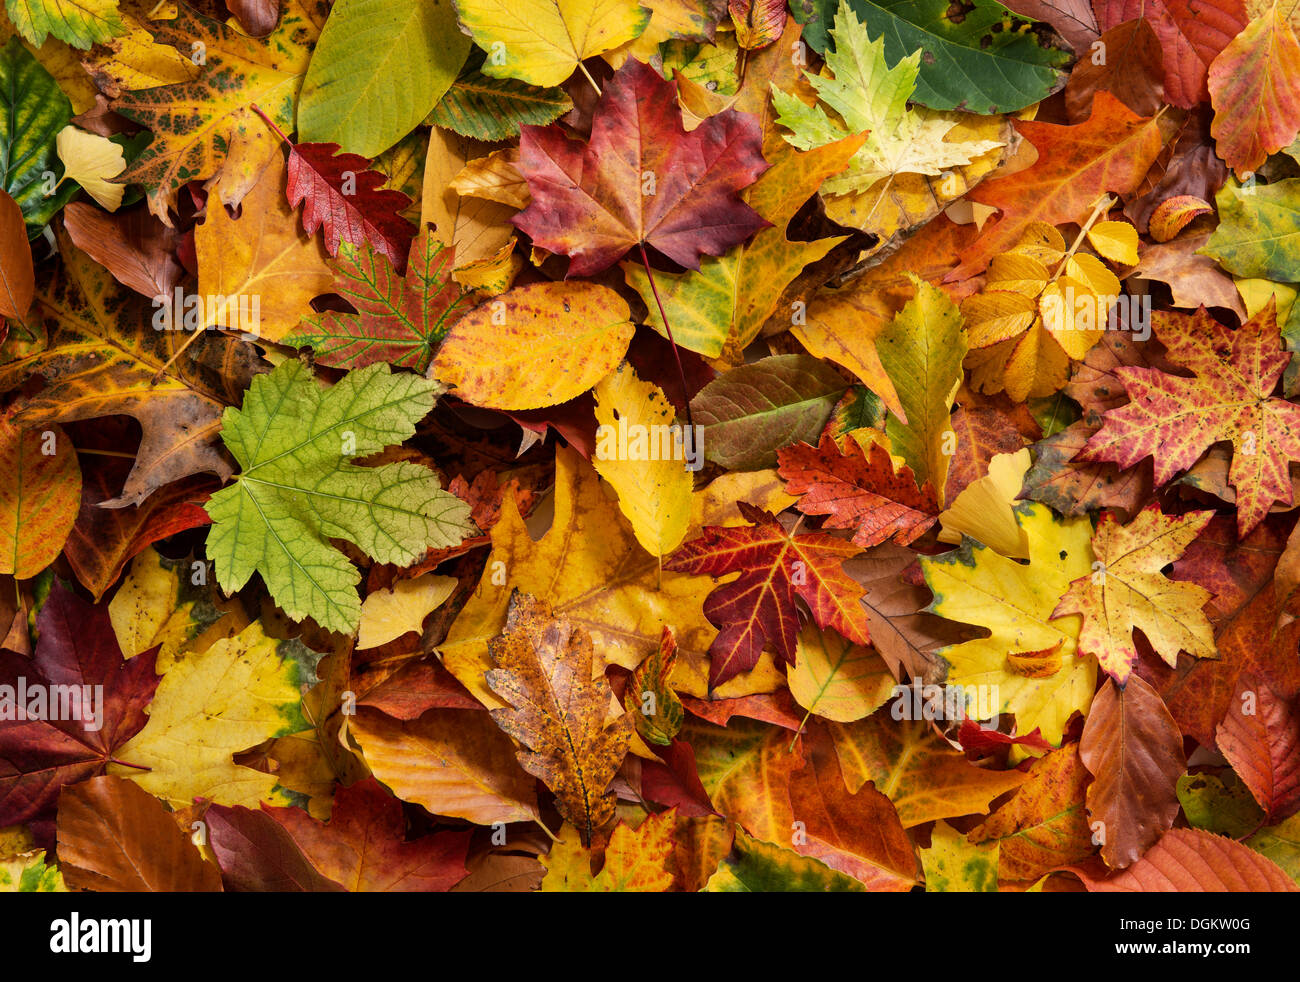 Colorful autumn foliage - Stock Image